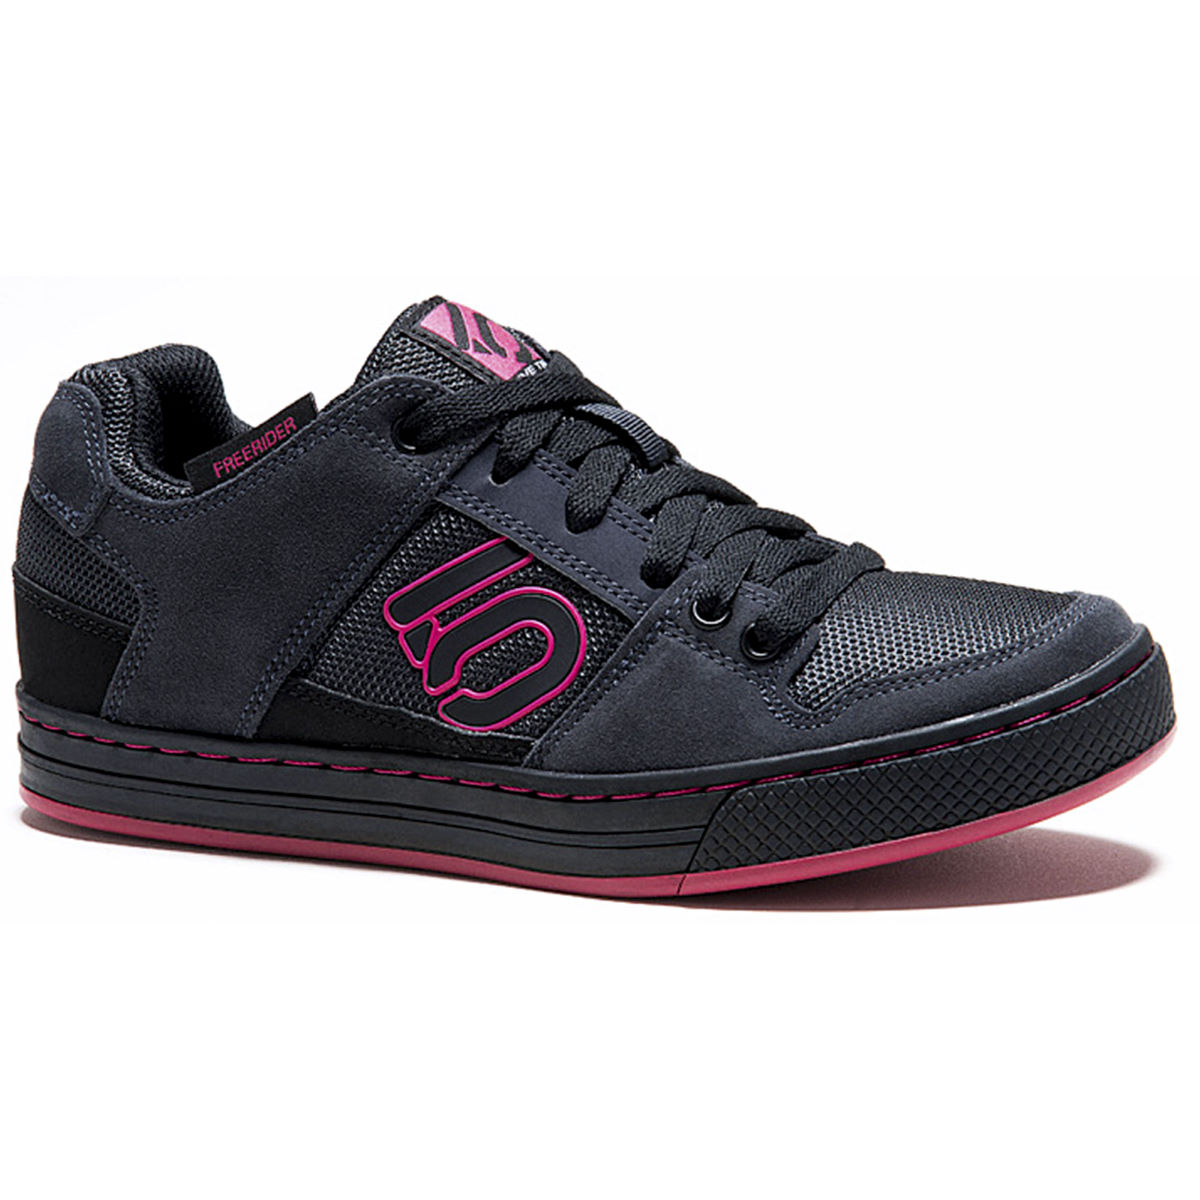 Chaussures VTT Femme Five Ten Freerider - EU 37 Black - Berry